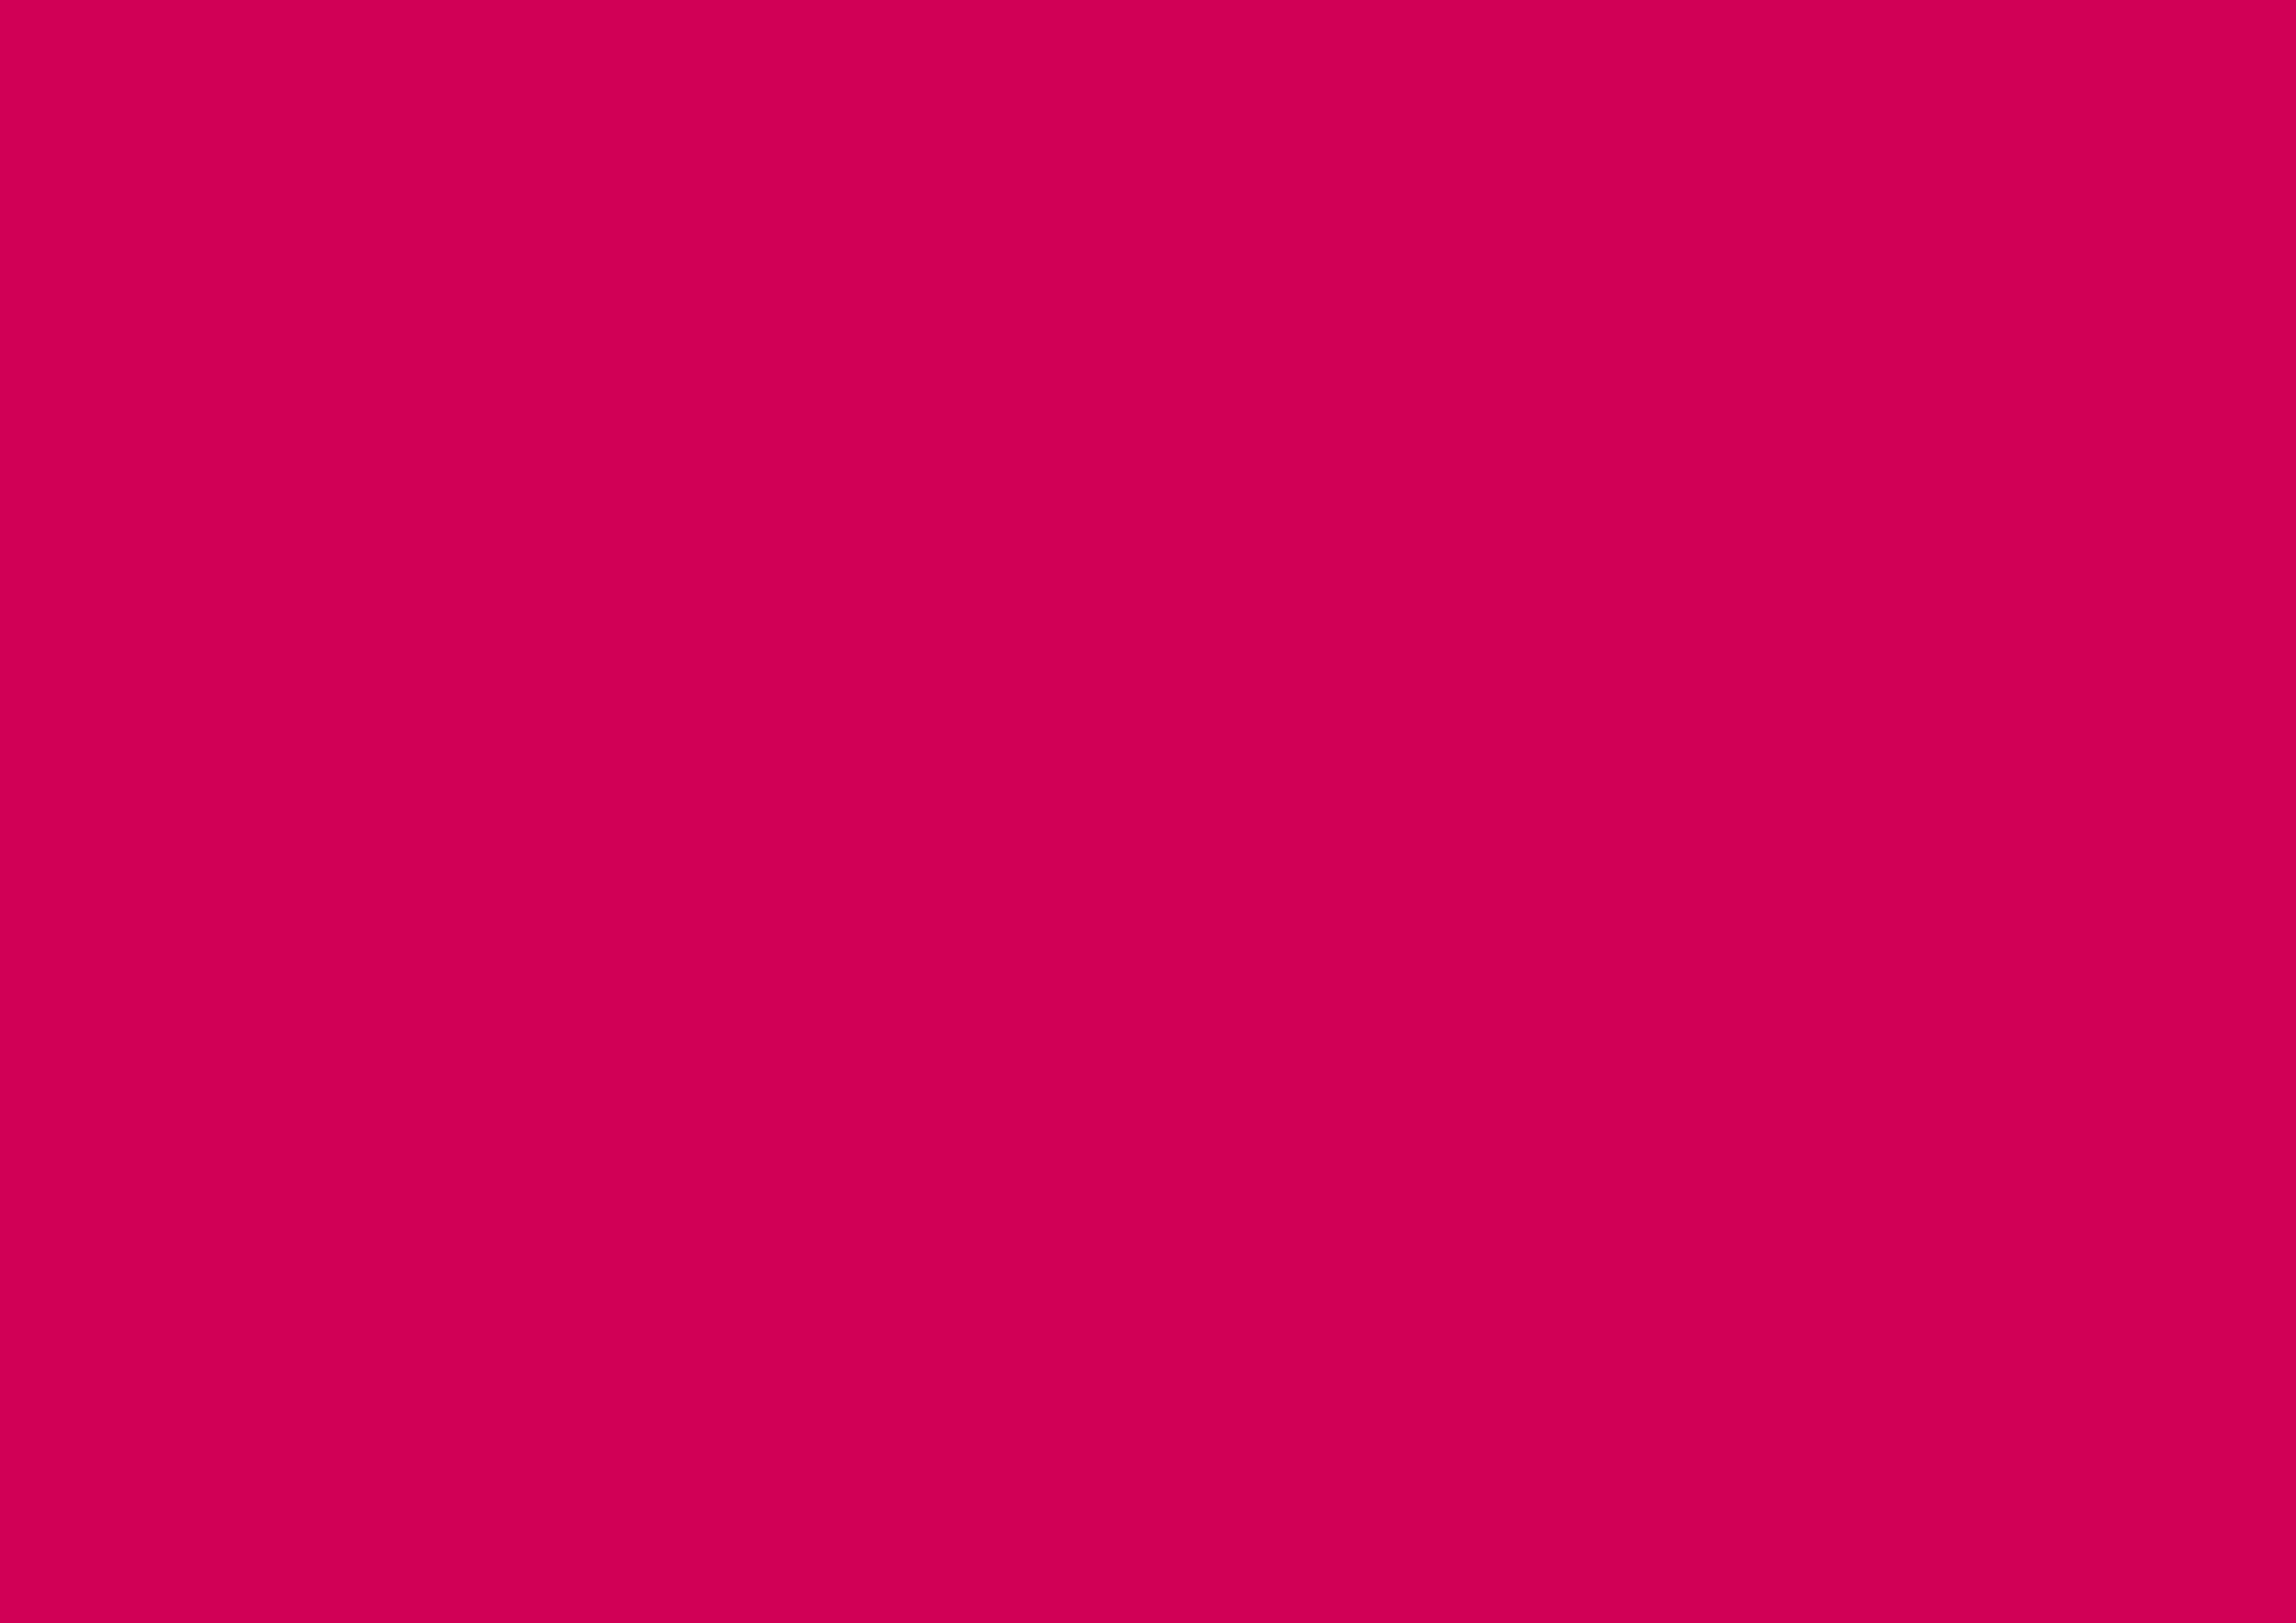 3508x2480 Rubine Red Solid Color Background